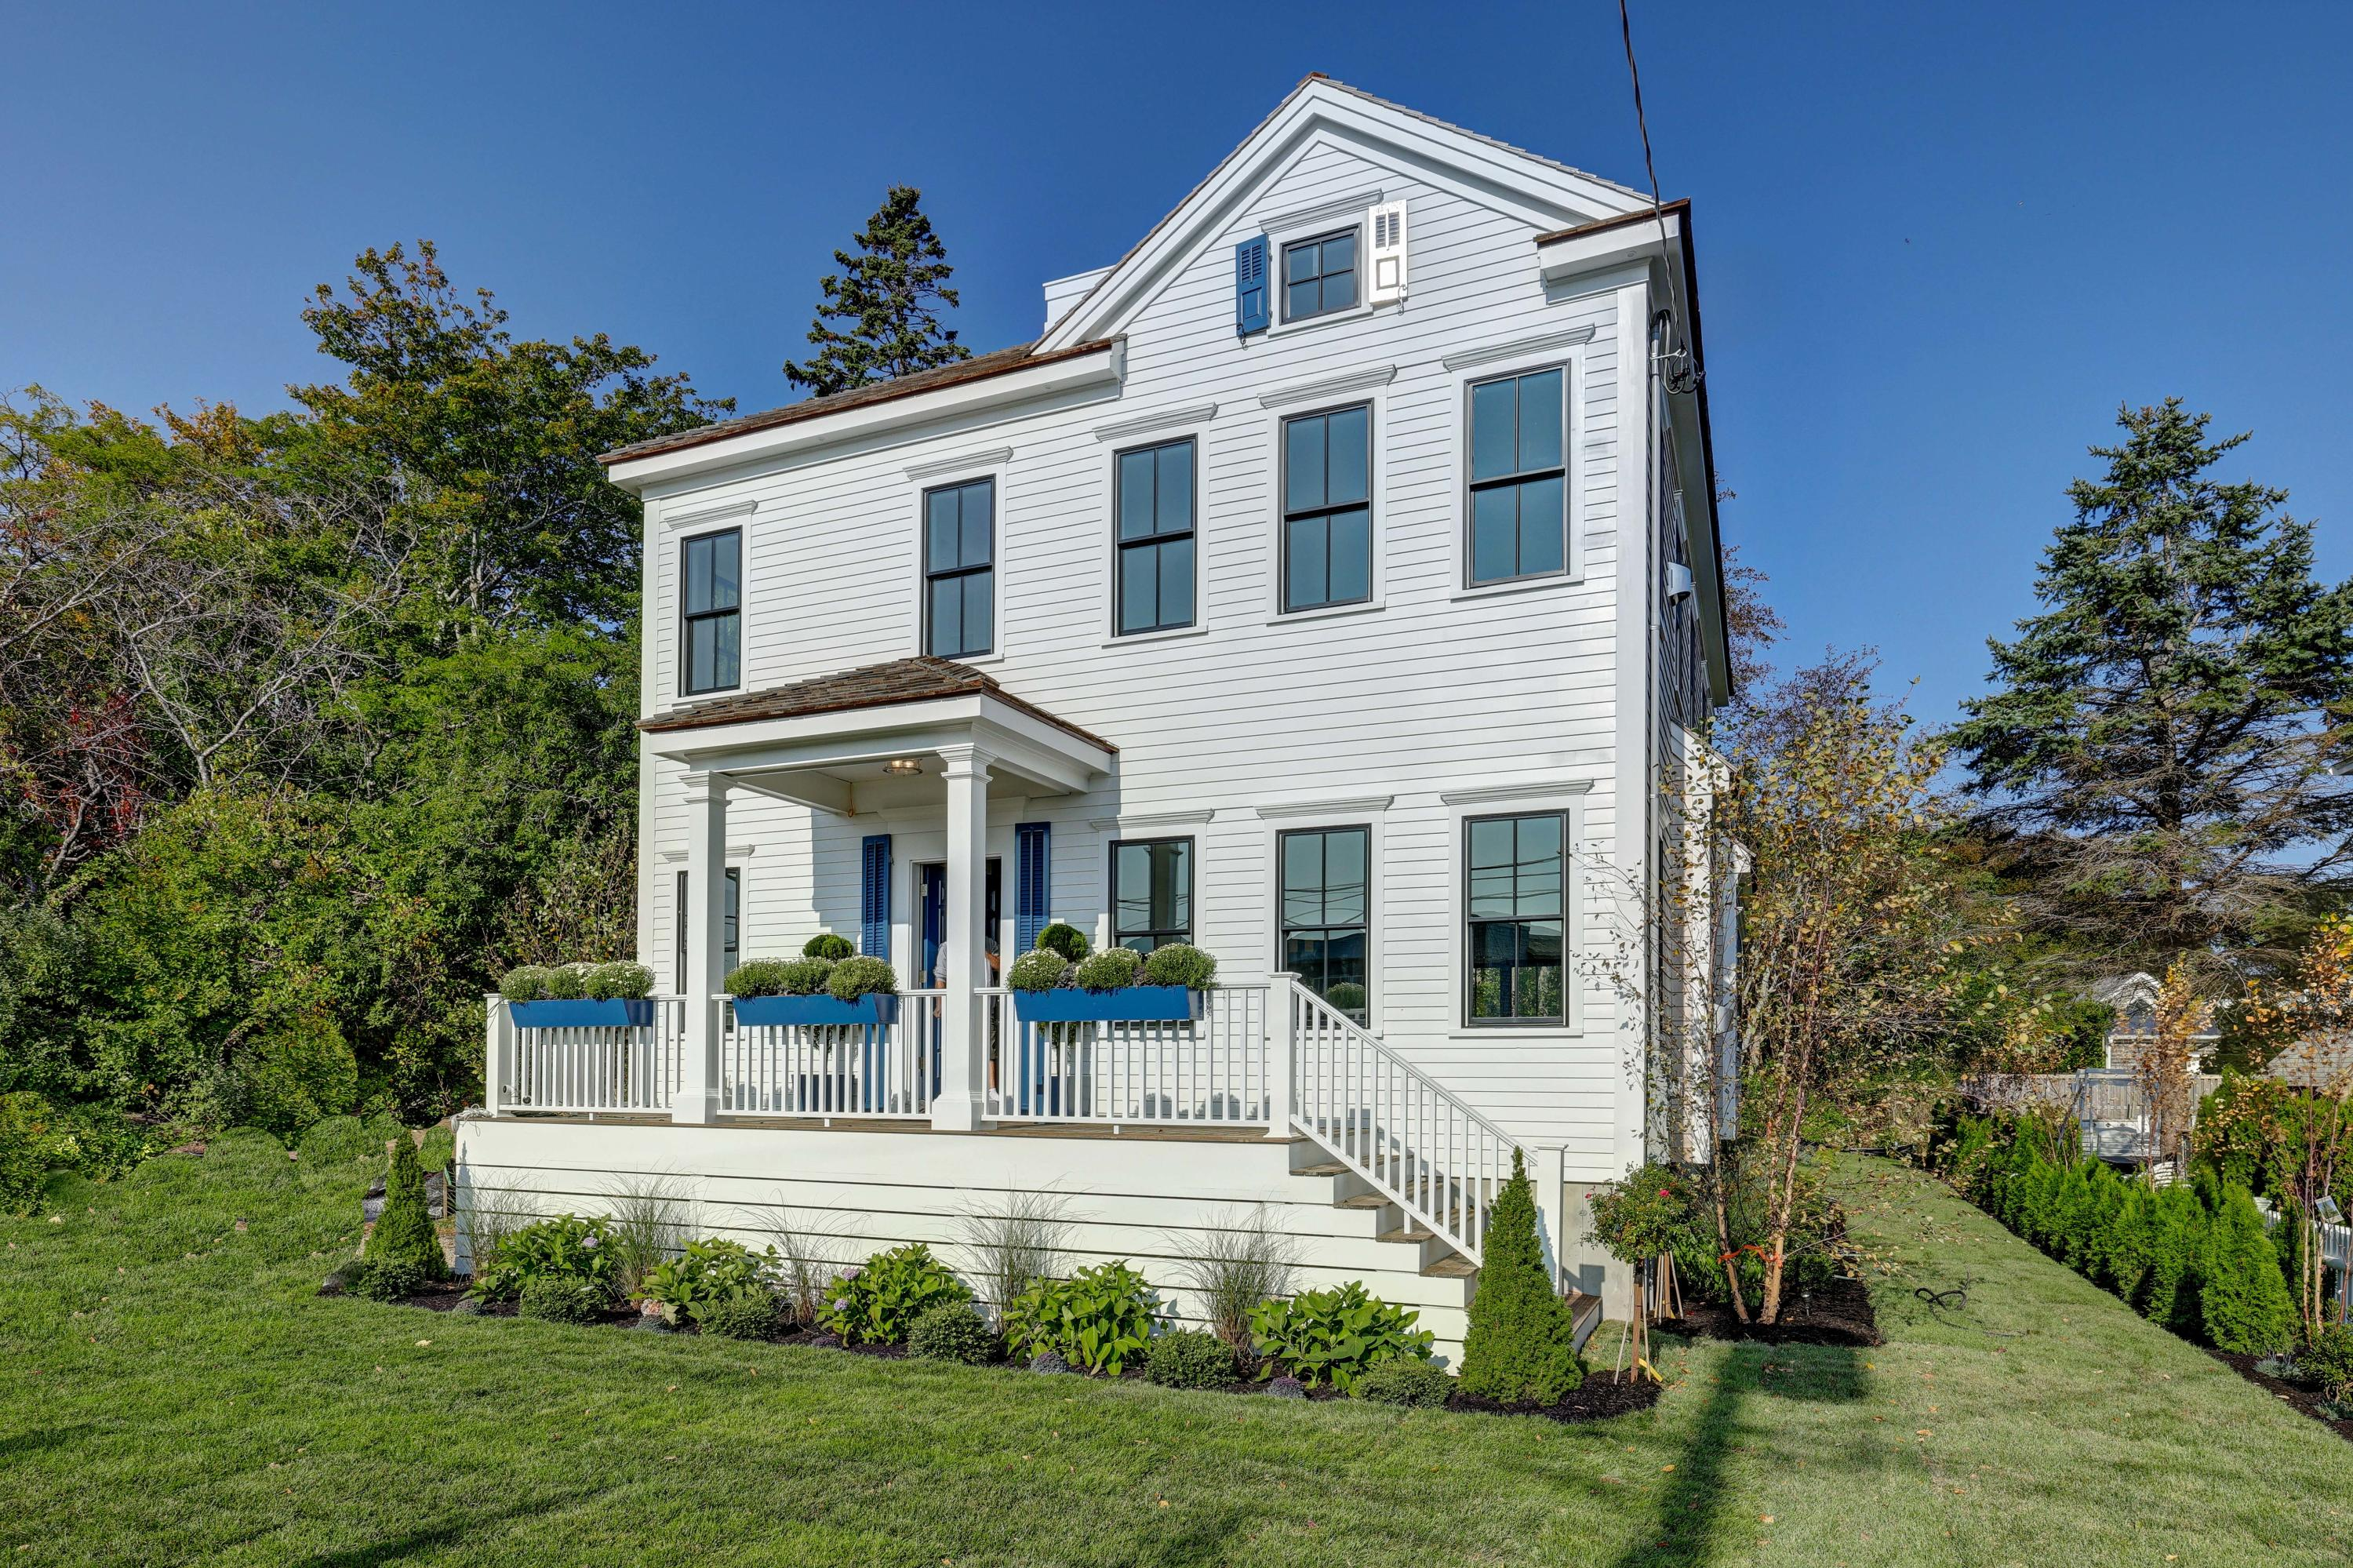 6 Commercial Street, Provincetown MA, 02657 details